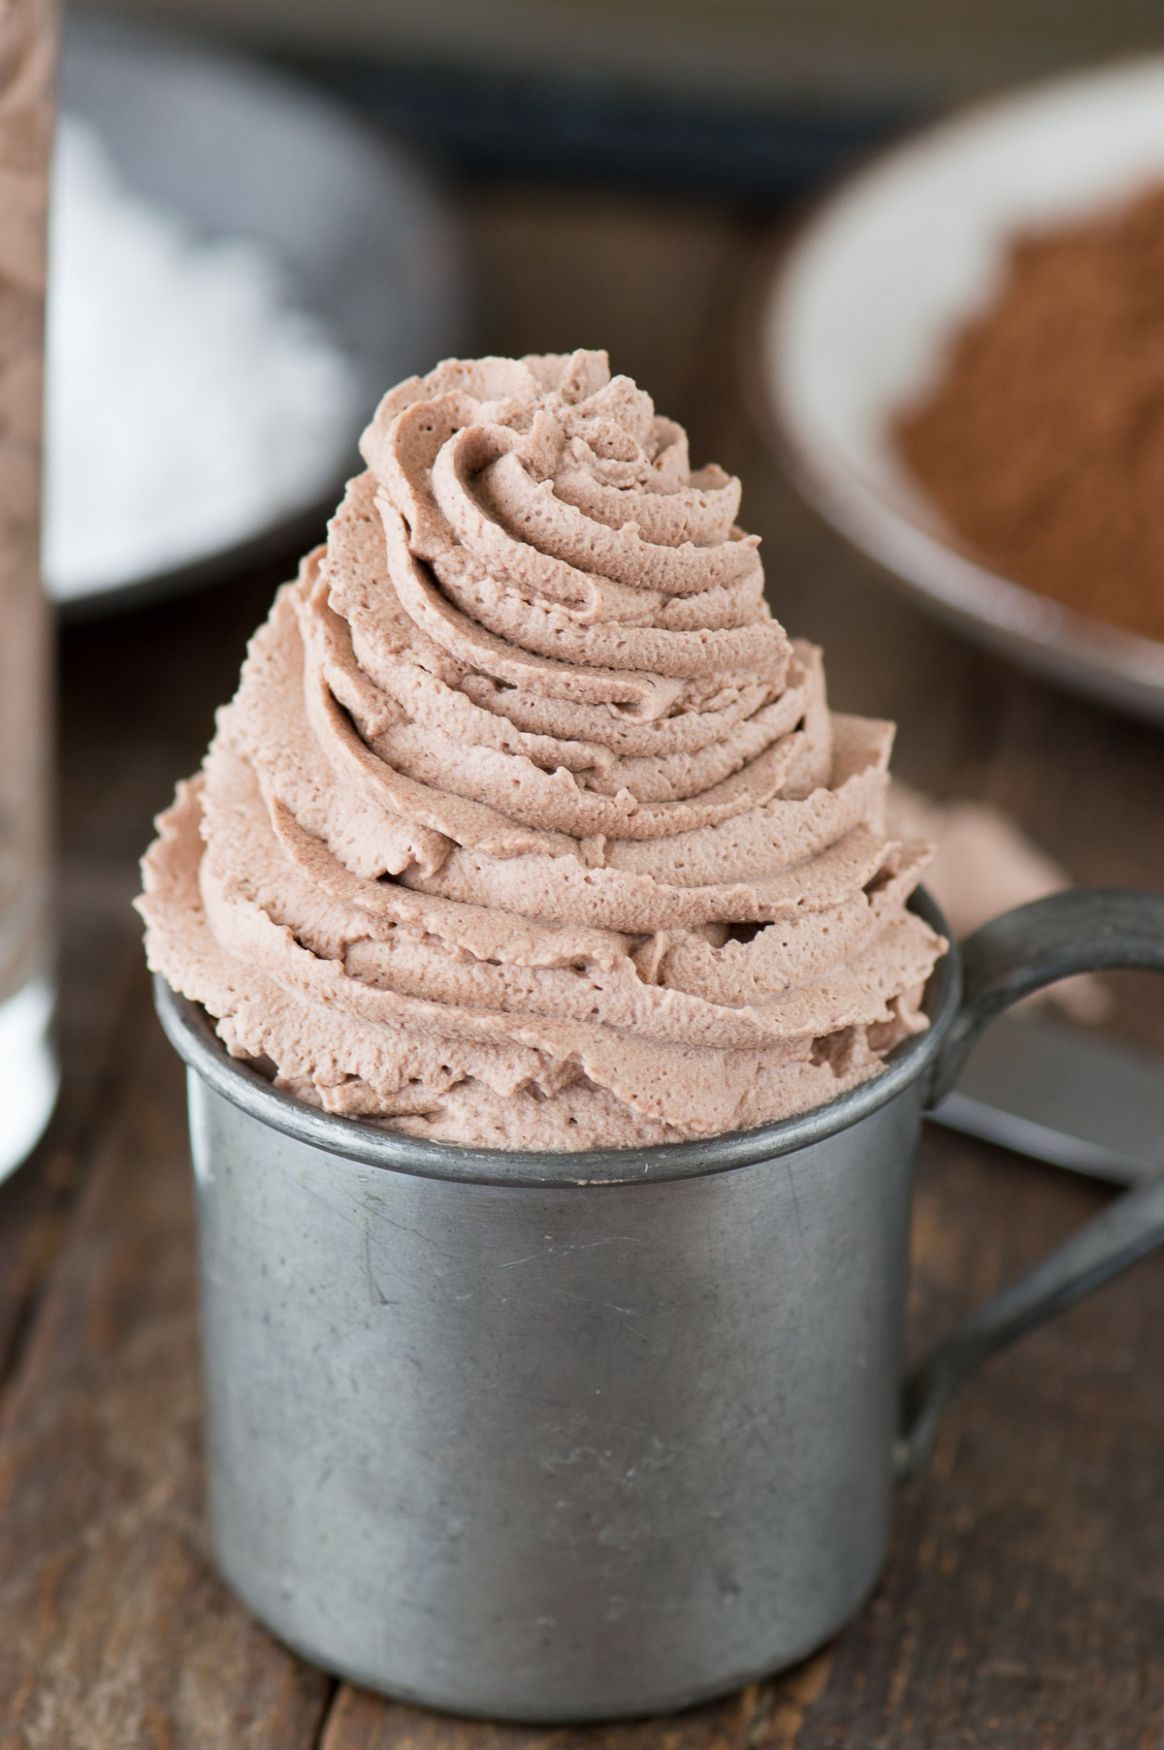 Chocolate Whipped Cream | The First Year - Dessert Recipes That Use Heavy Whipping Cream